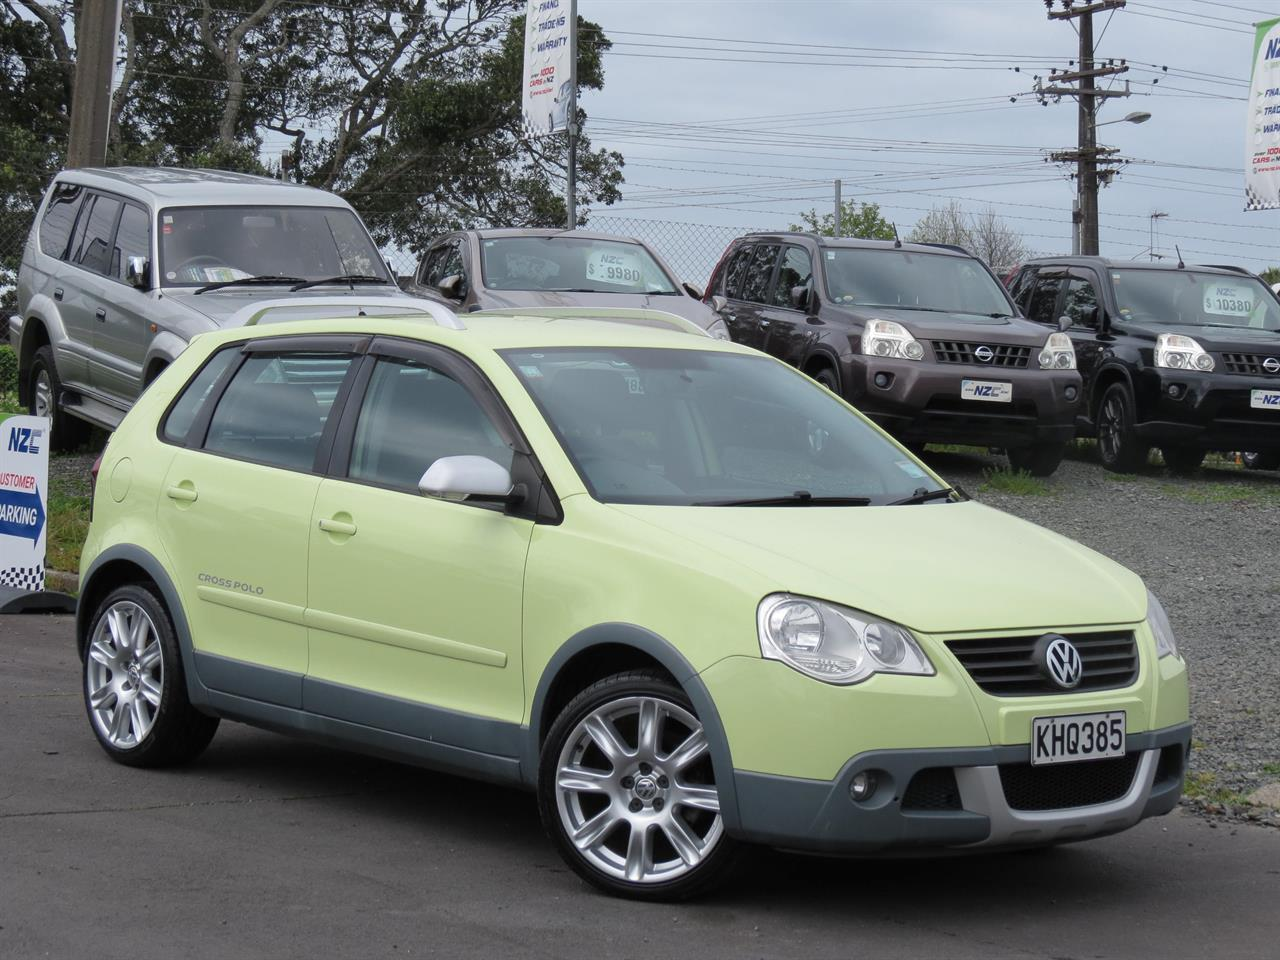 2007 Volkswagen CROSS POLO